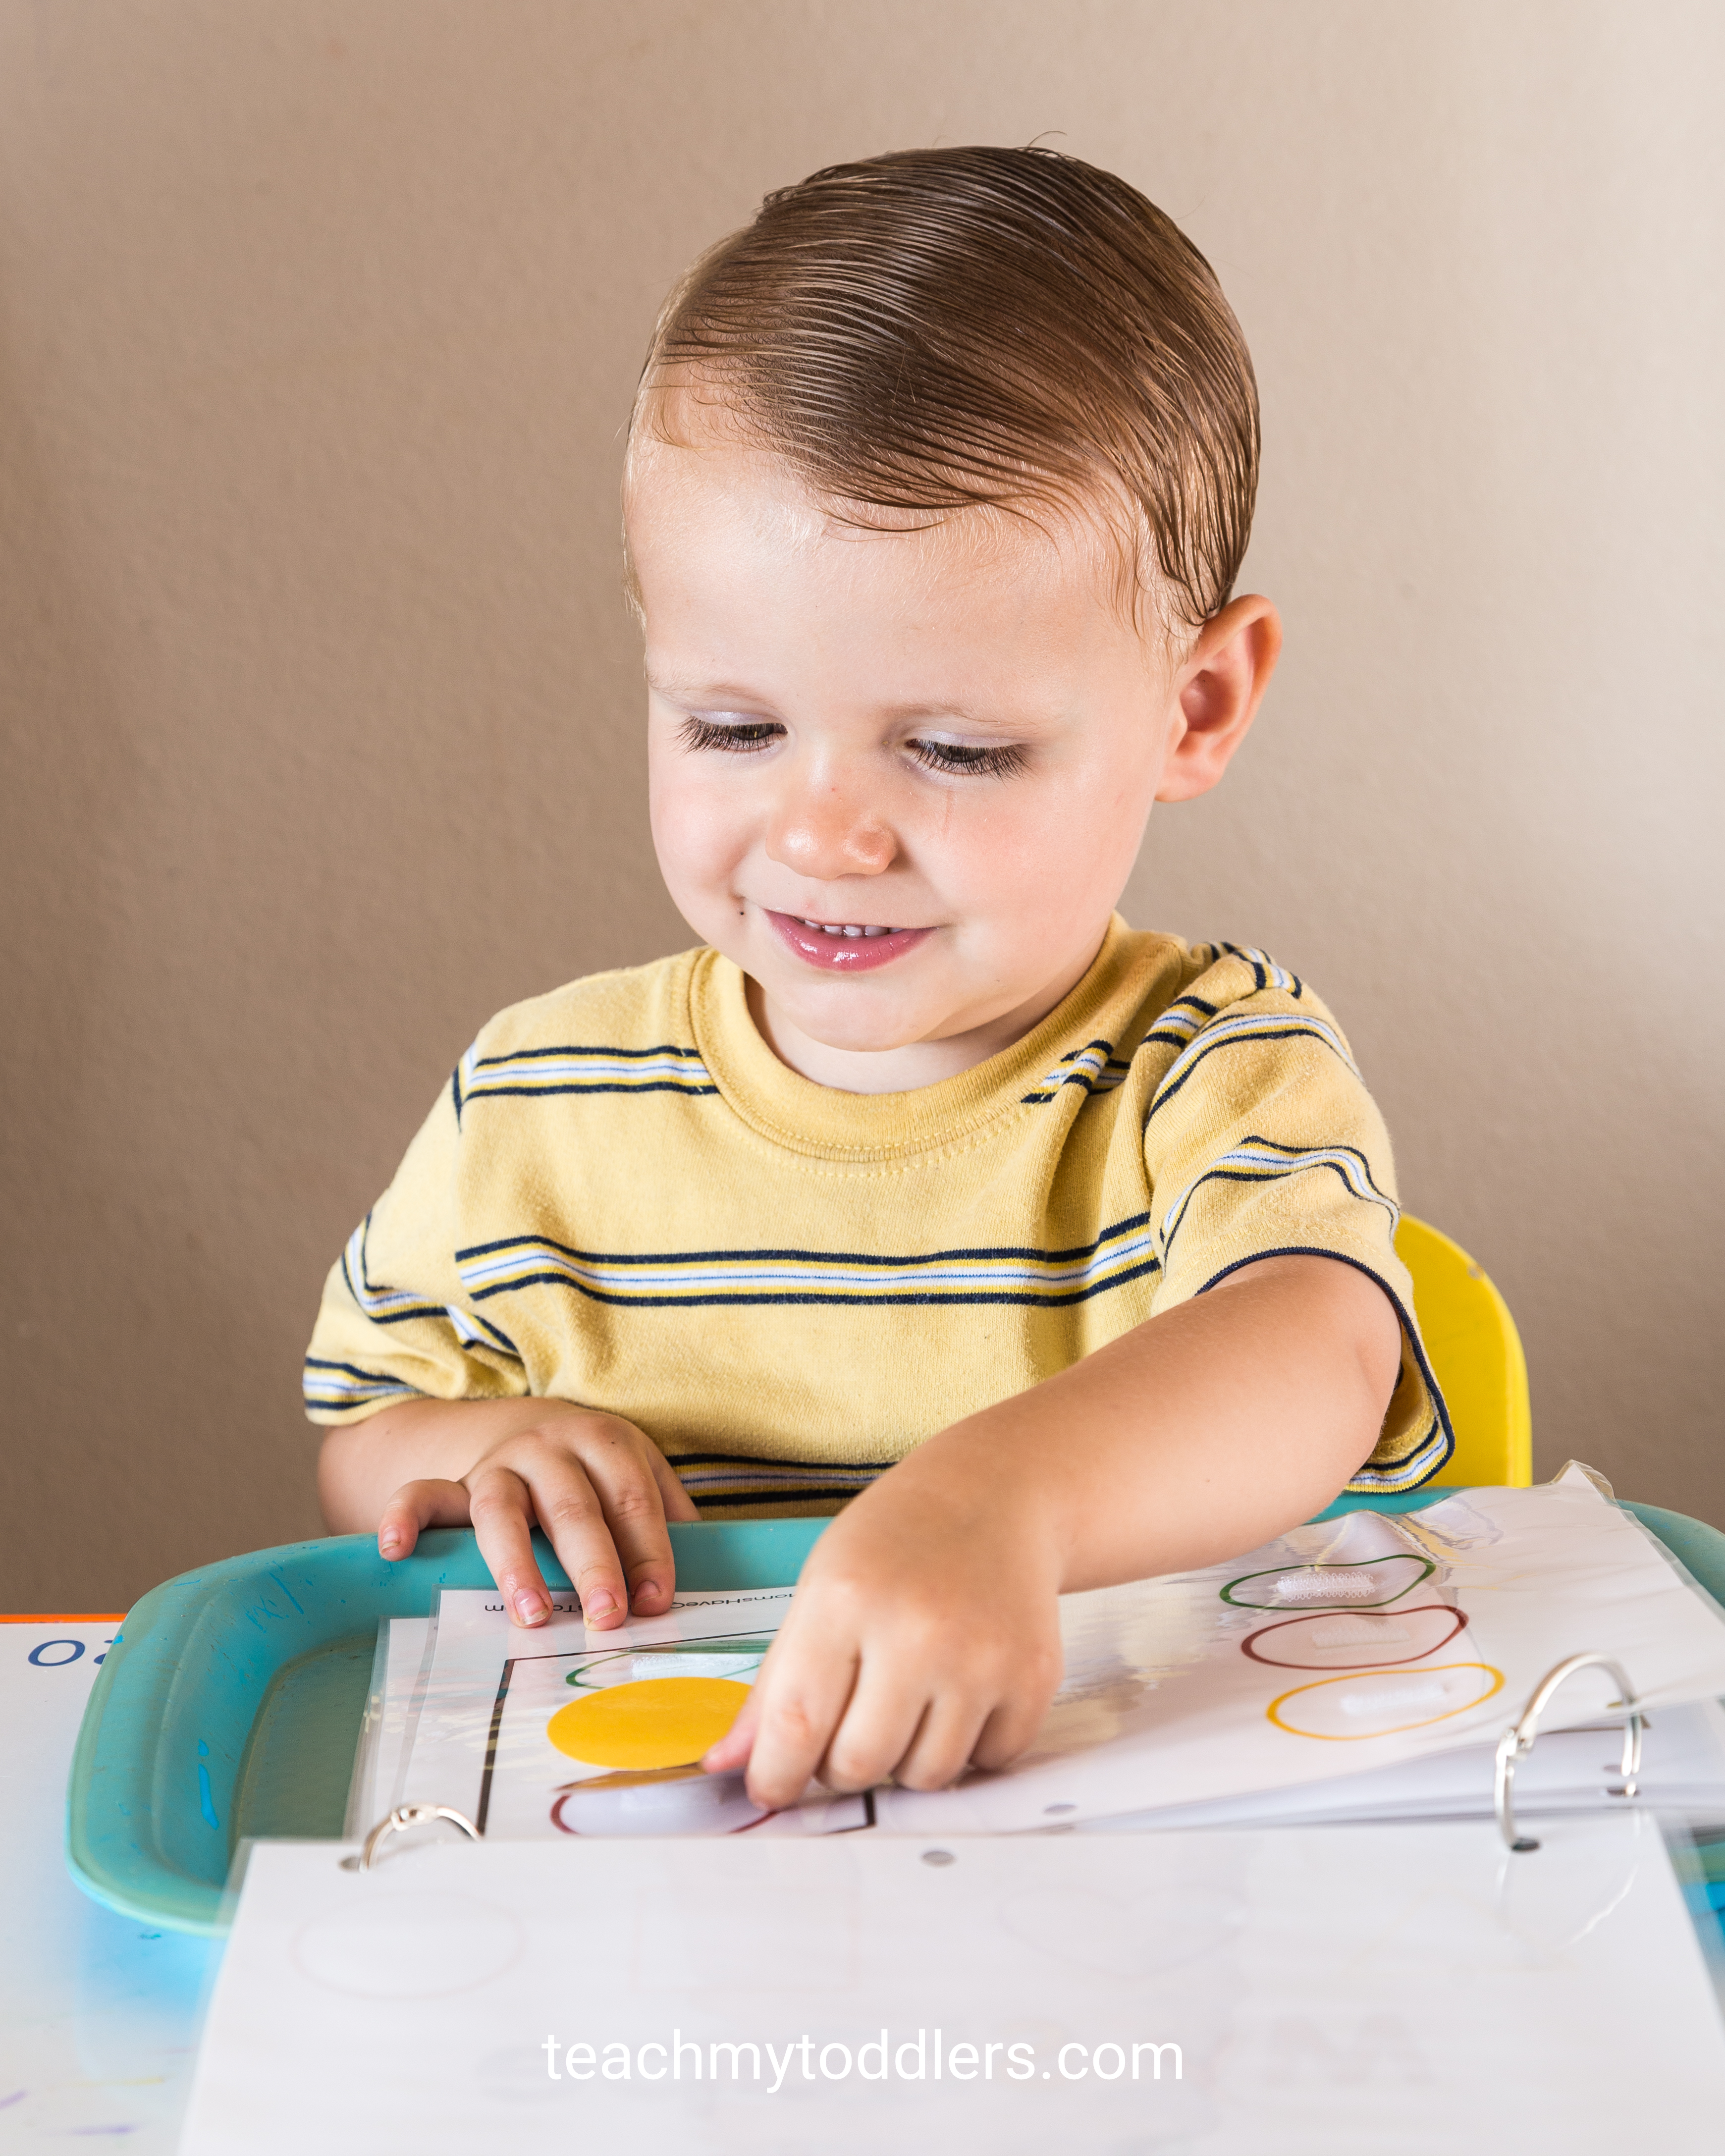 Find out how to use these circle trays to teach your toddlers shapes